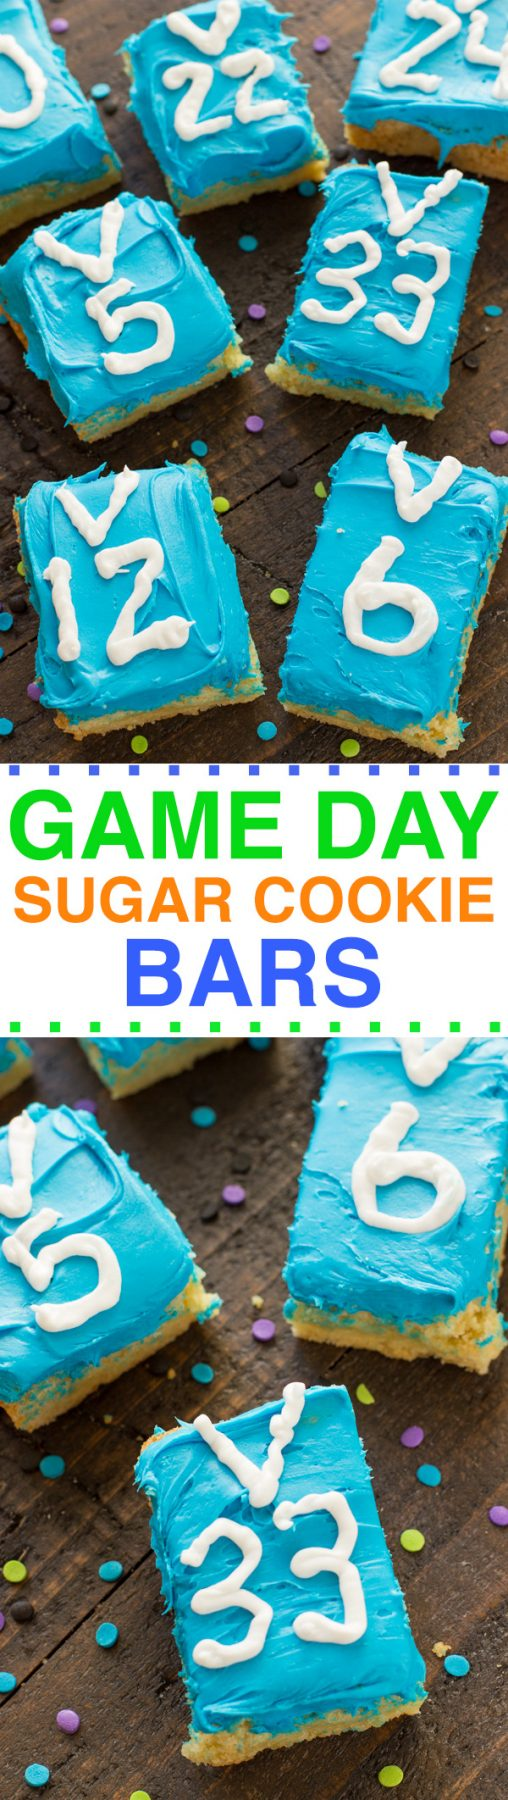 GAME DAY SUGAR COOKIE BARS RECIPE